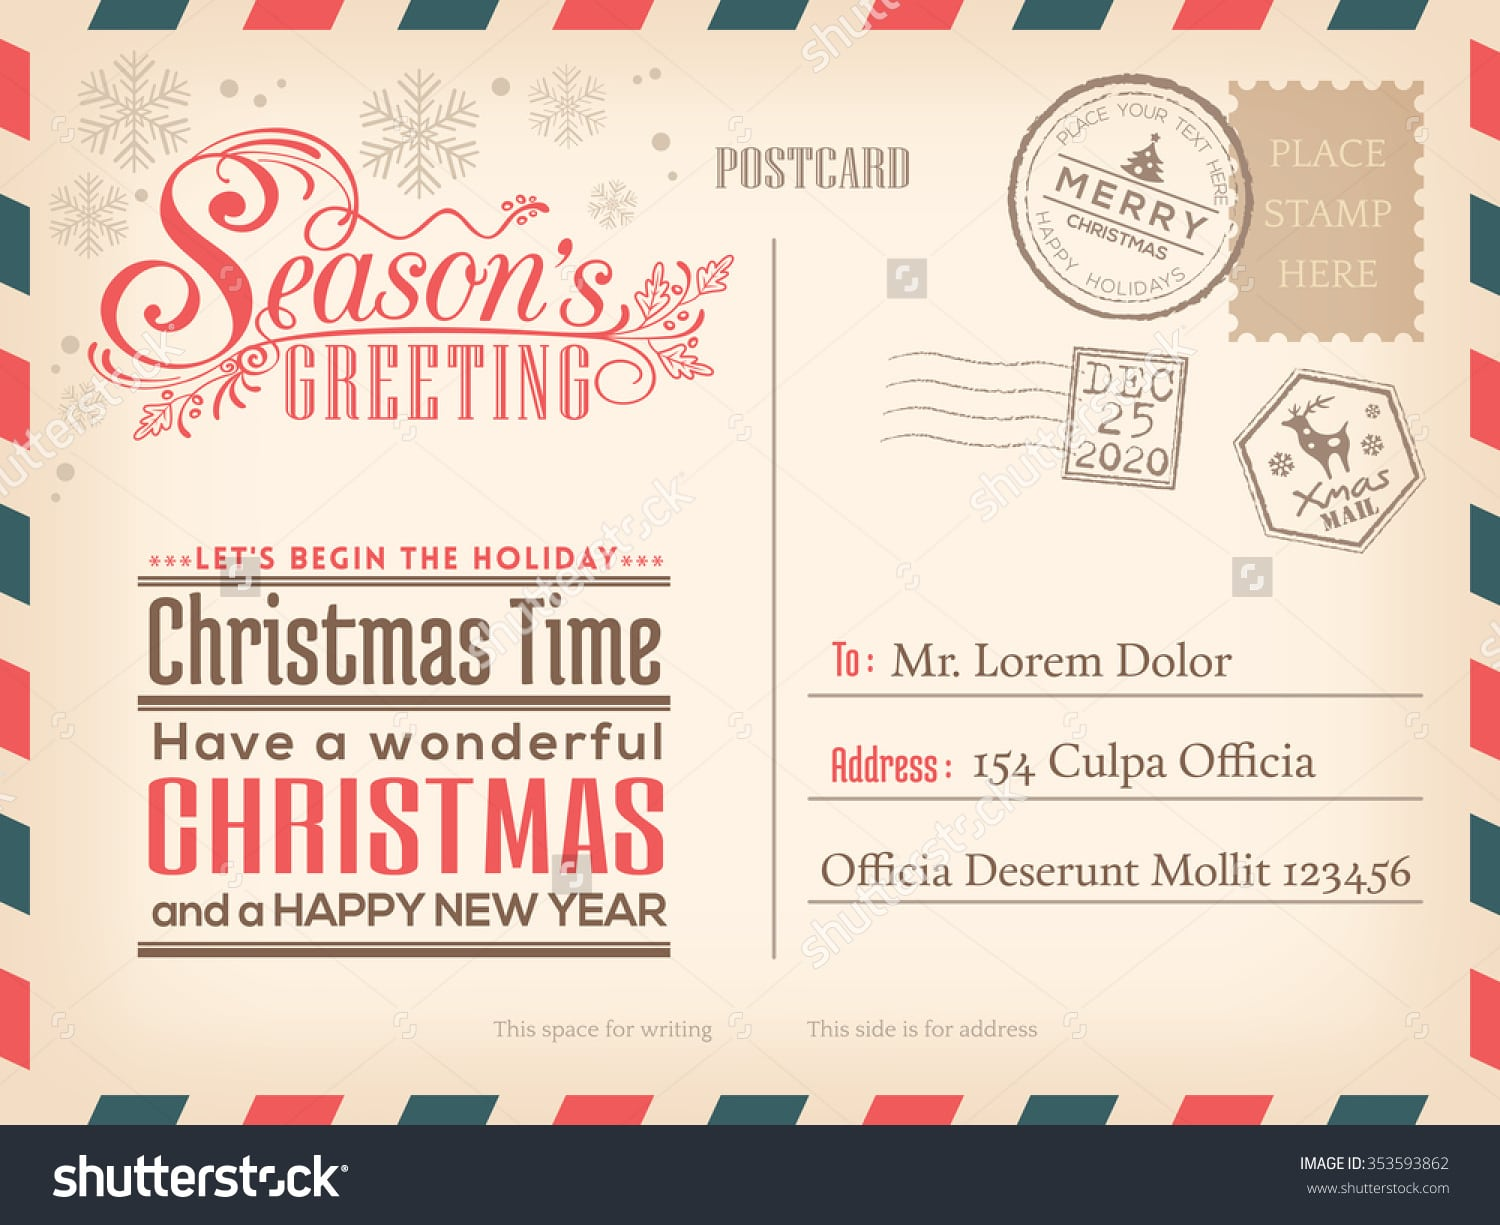 Christmas Party Invitations Vintage Cool Christmas Party